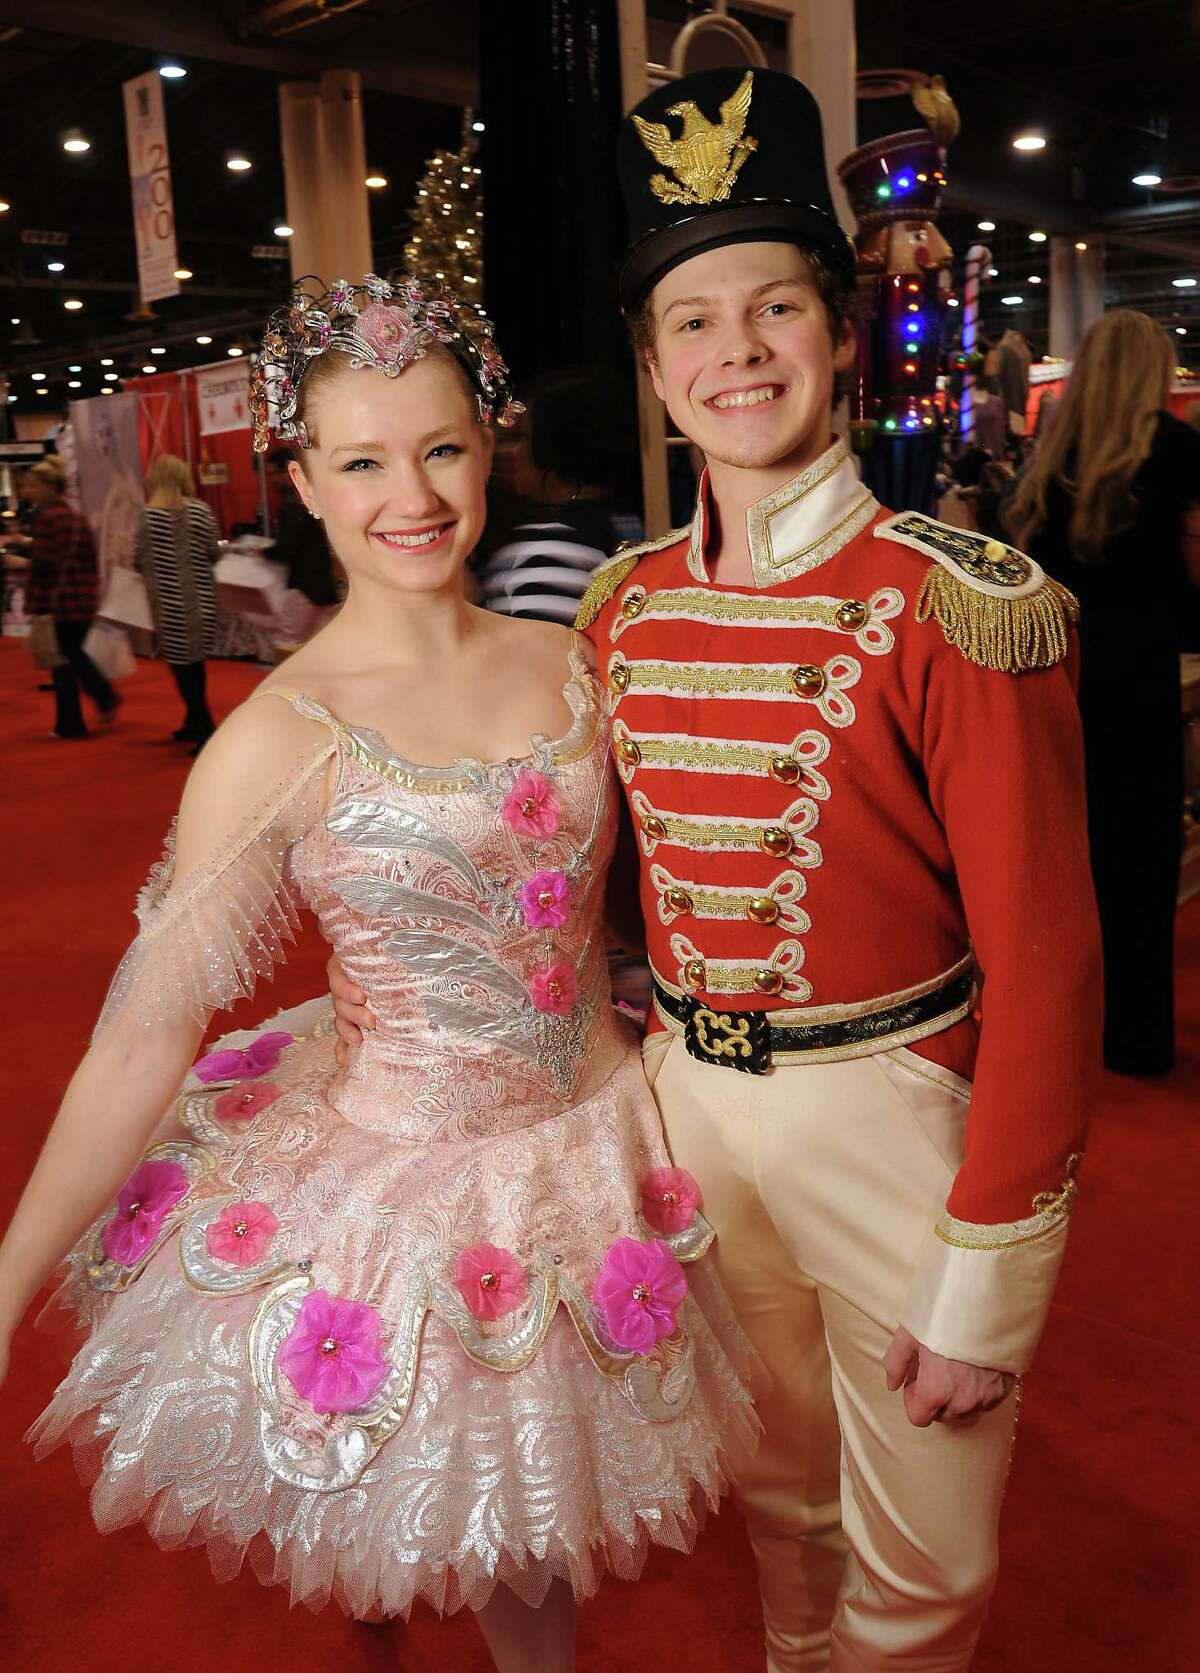 Hacks, tricks for the Nutcracker Market The annual event brings thousands of holiday shoppers to the NRG Center for an entire weekend of shopping festivities. Several Houston Chronicle employees have gone to the annual event for years and they're sharing their tips, tricks, and hacks to properly succeedingat the Nutcracker Market. Continue through the photos to see the tips for the annual event.